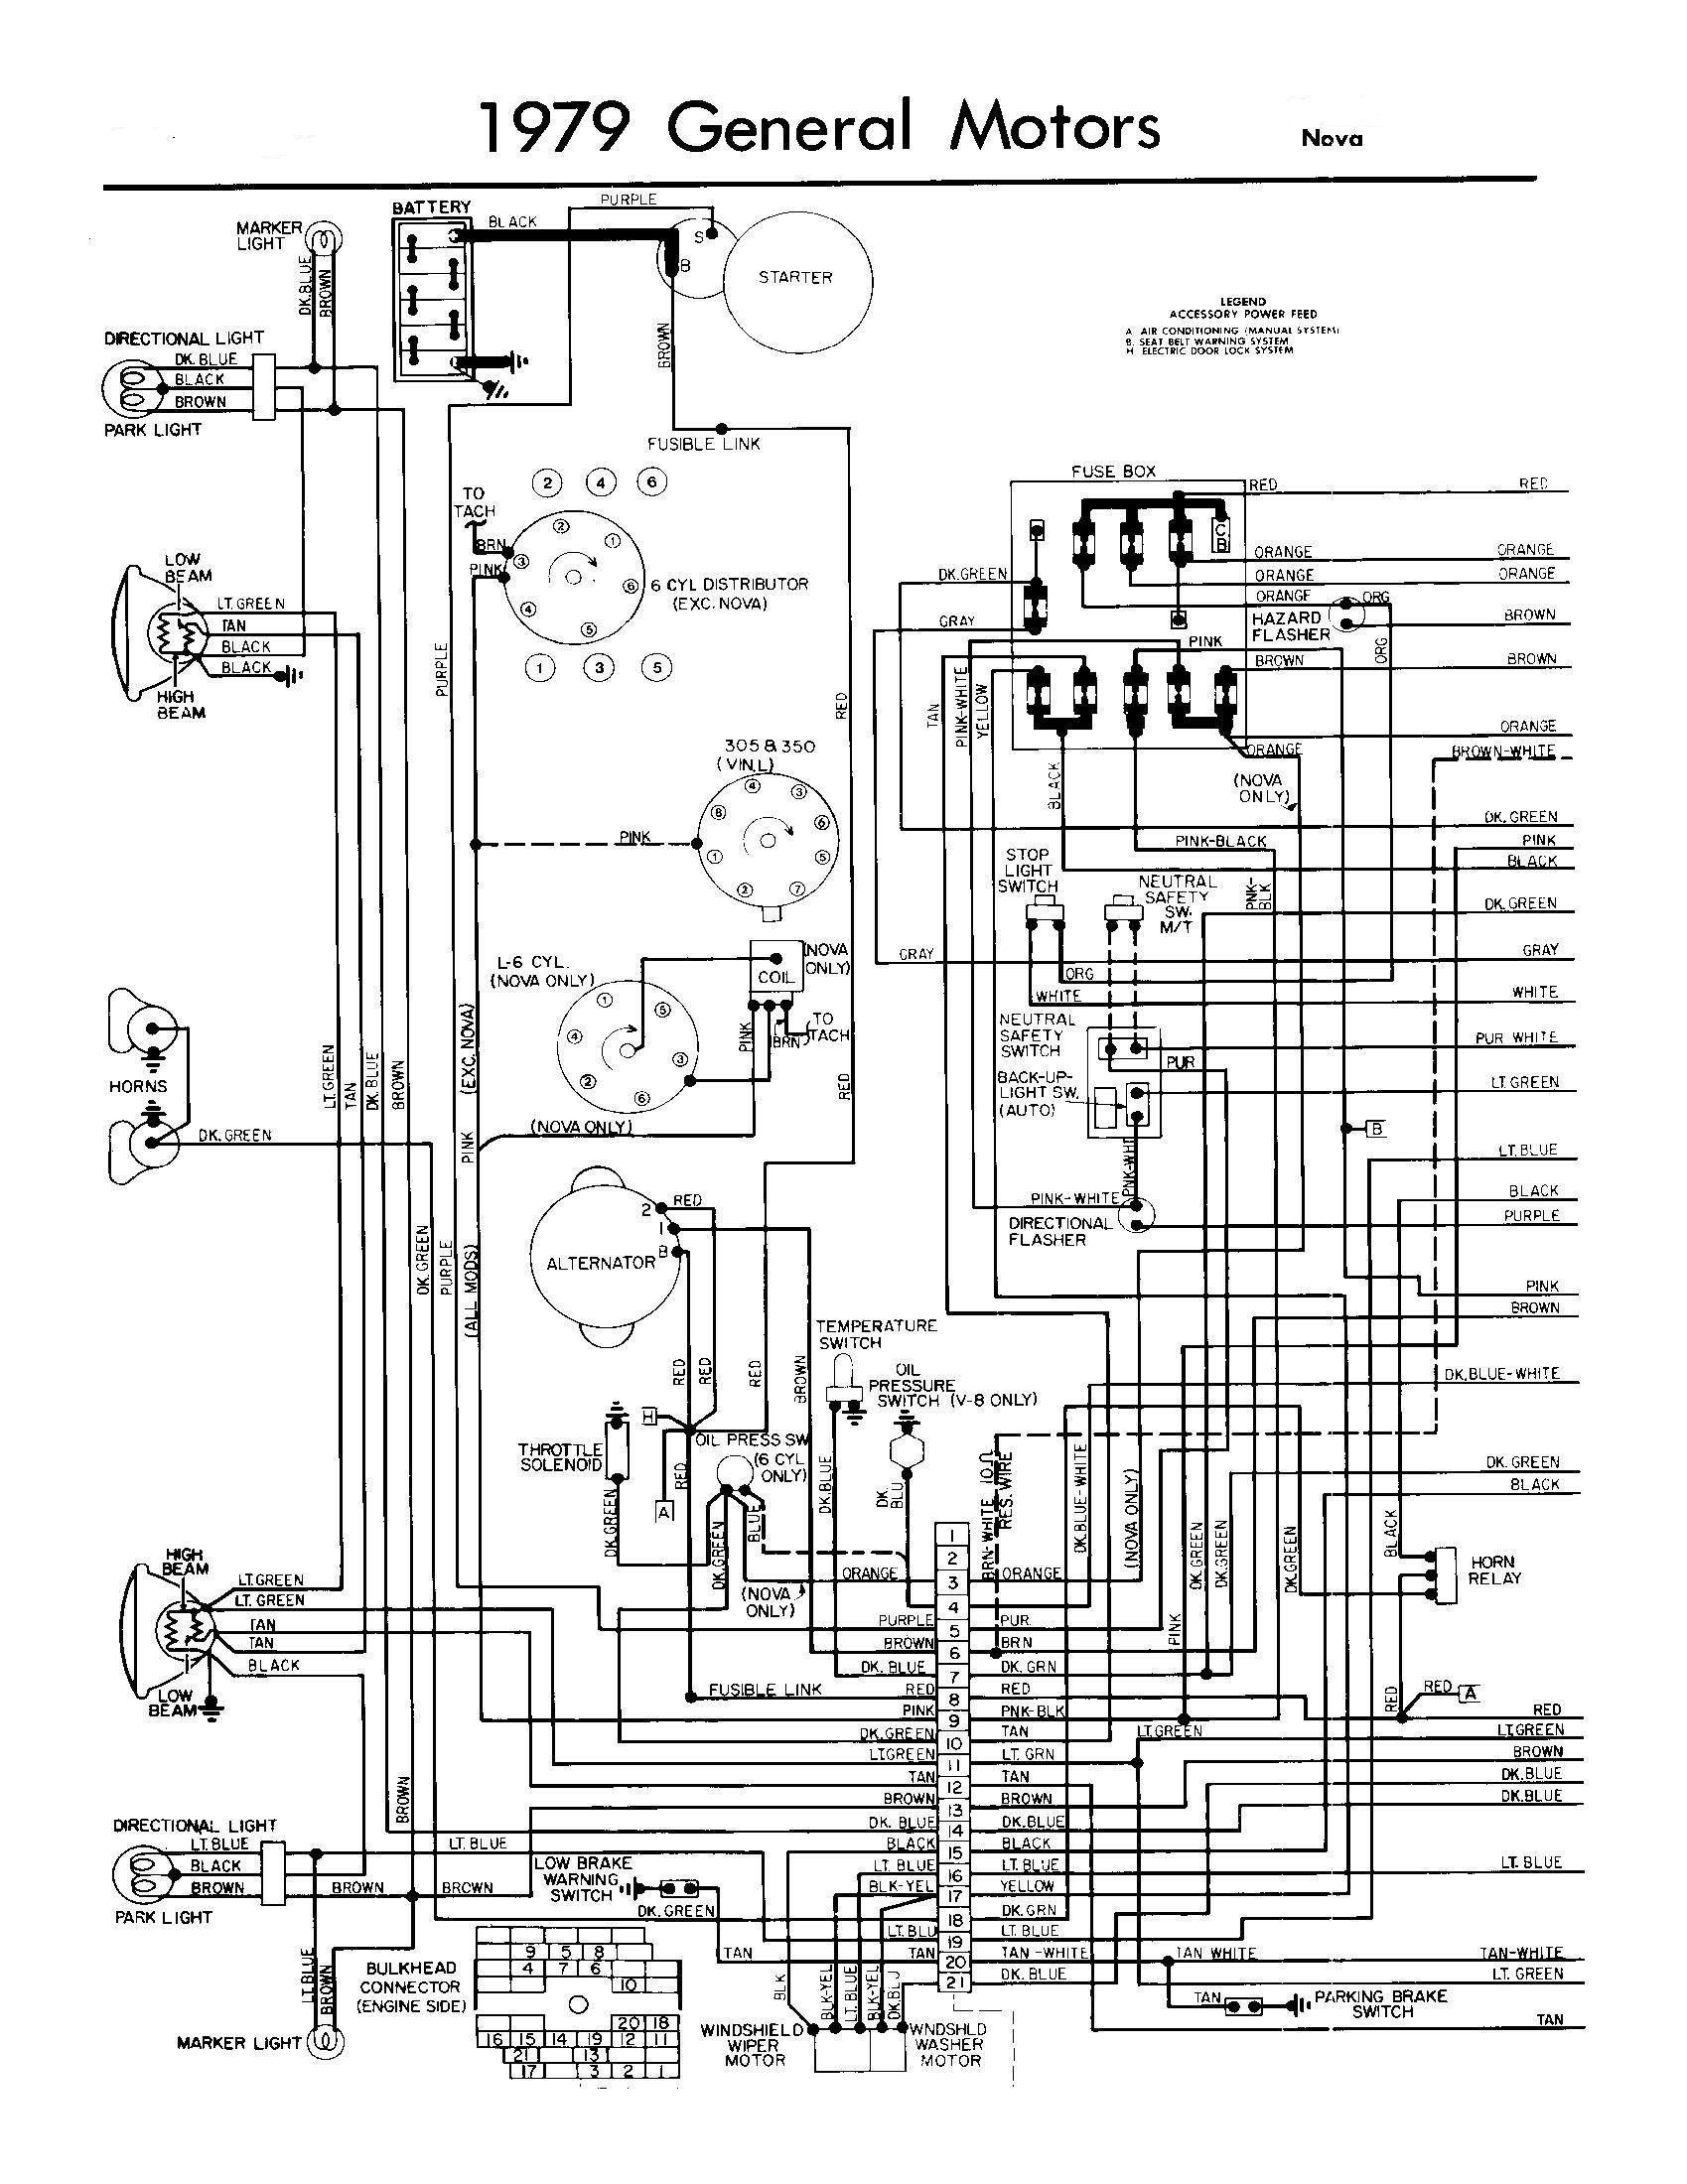 Best Of Vauxhall Alternator Wiring Diagram Diagrams Digramssample Diagramimages Wiringdiagramsample Wiringdia Chevy Trucks 1979 Chevy Truck 79 Chevy Truck